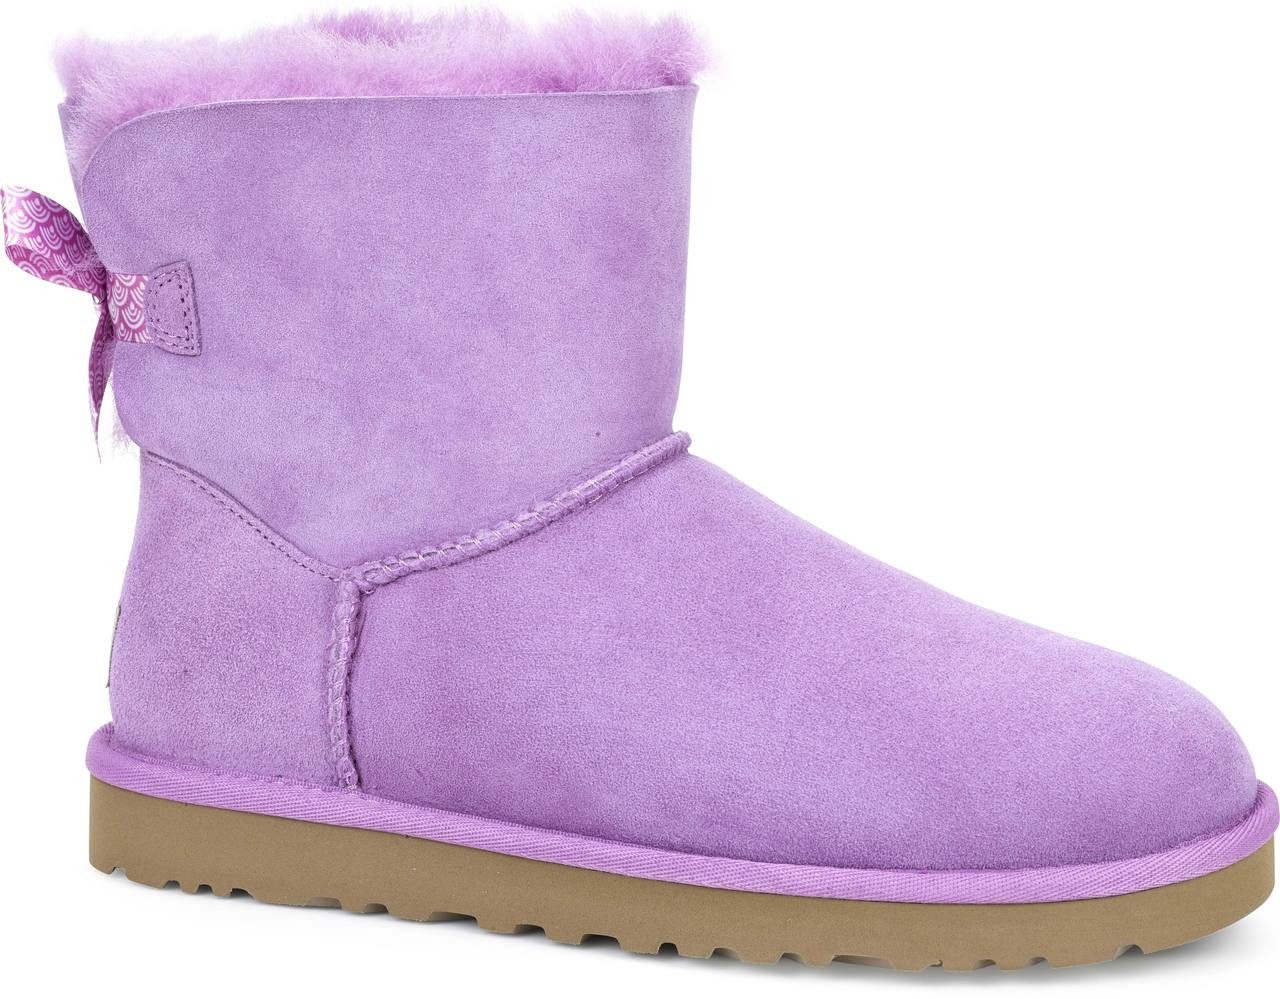 light pink bailey bow uggs womens. Black Bedroom Furniture Sets. Home Design Ideas